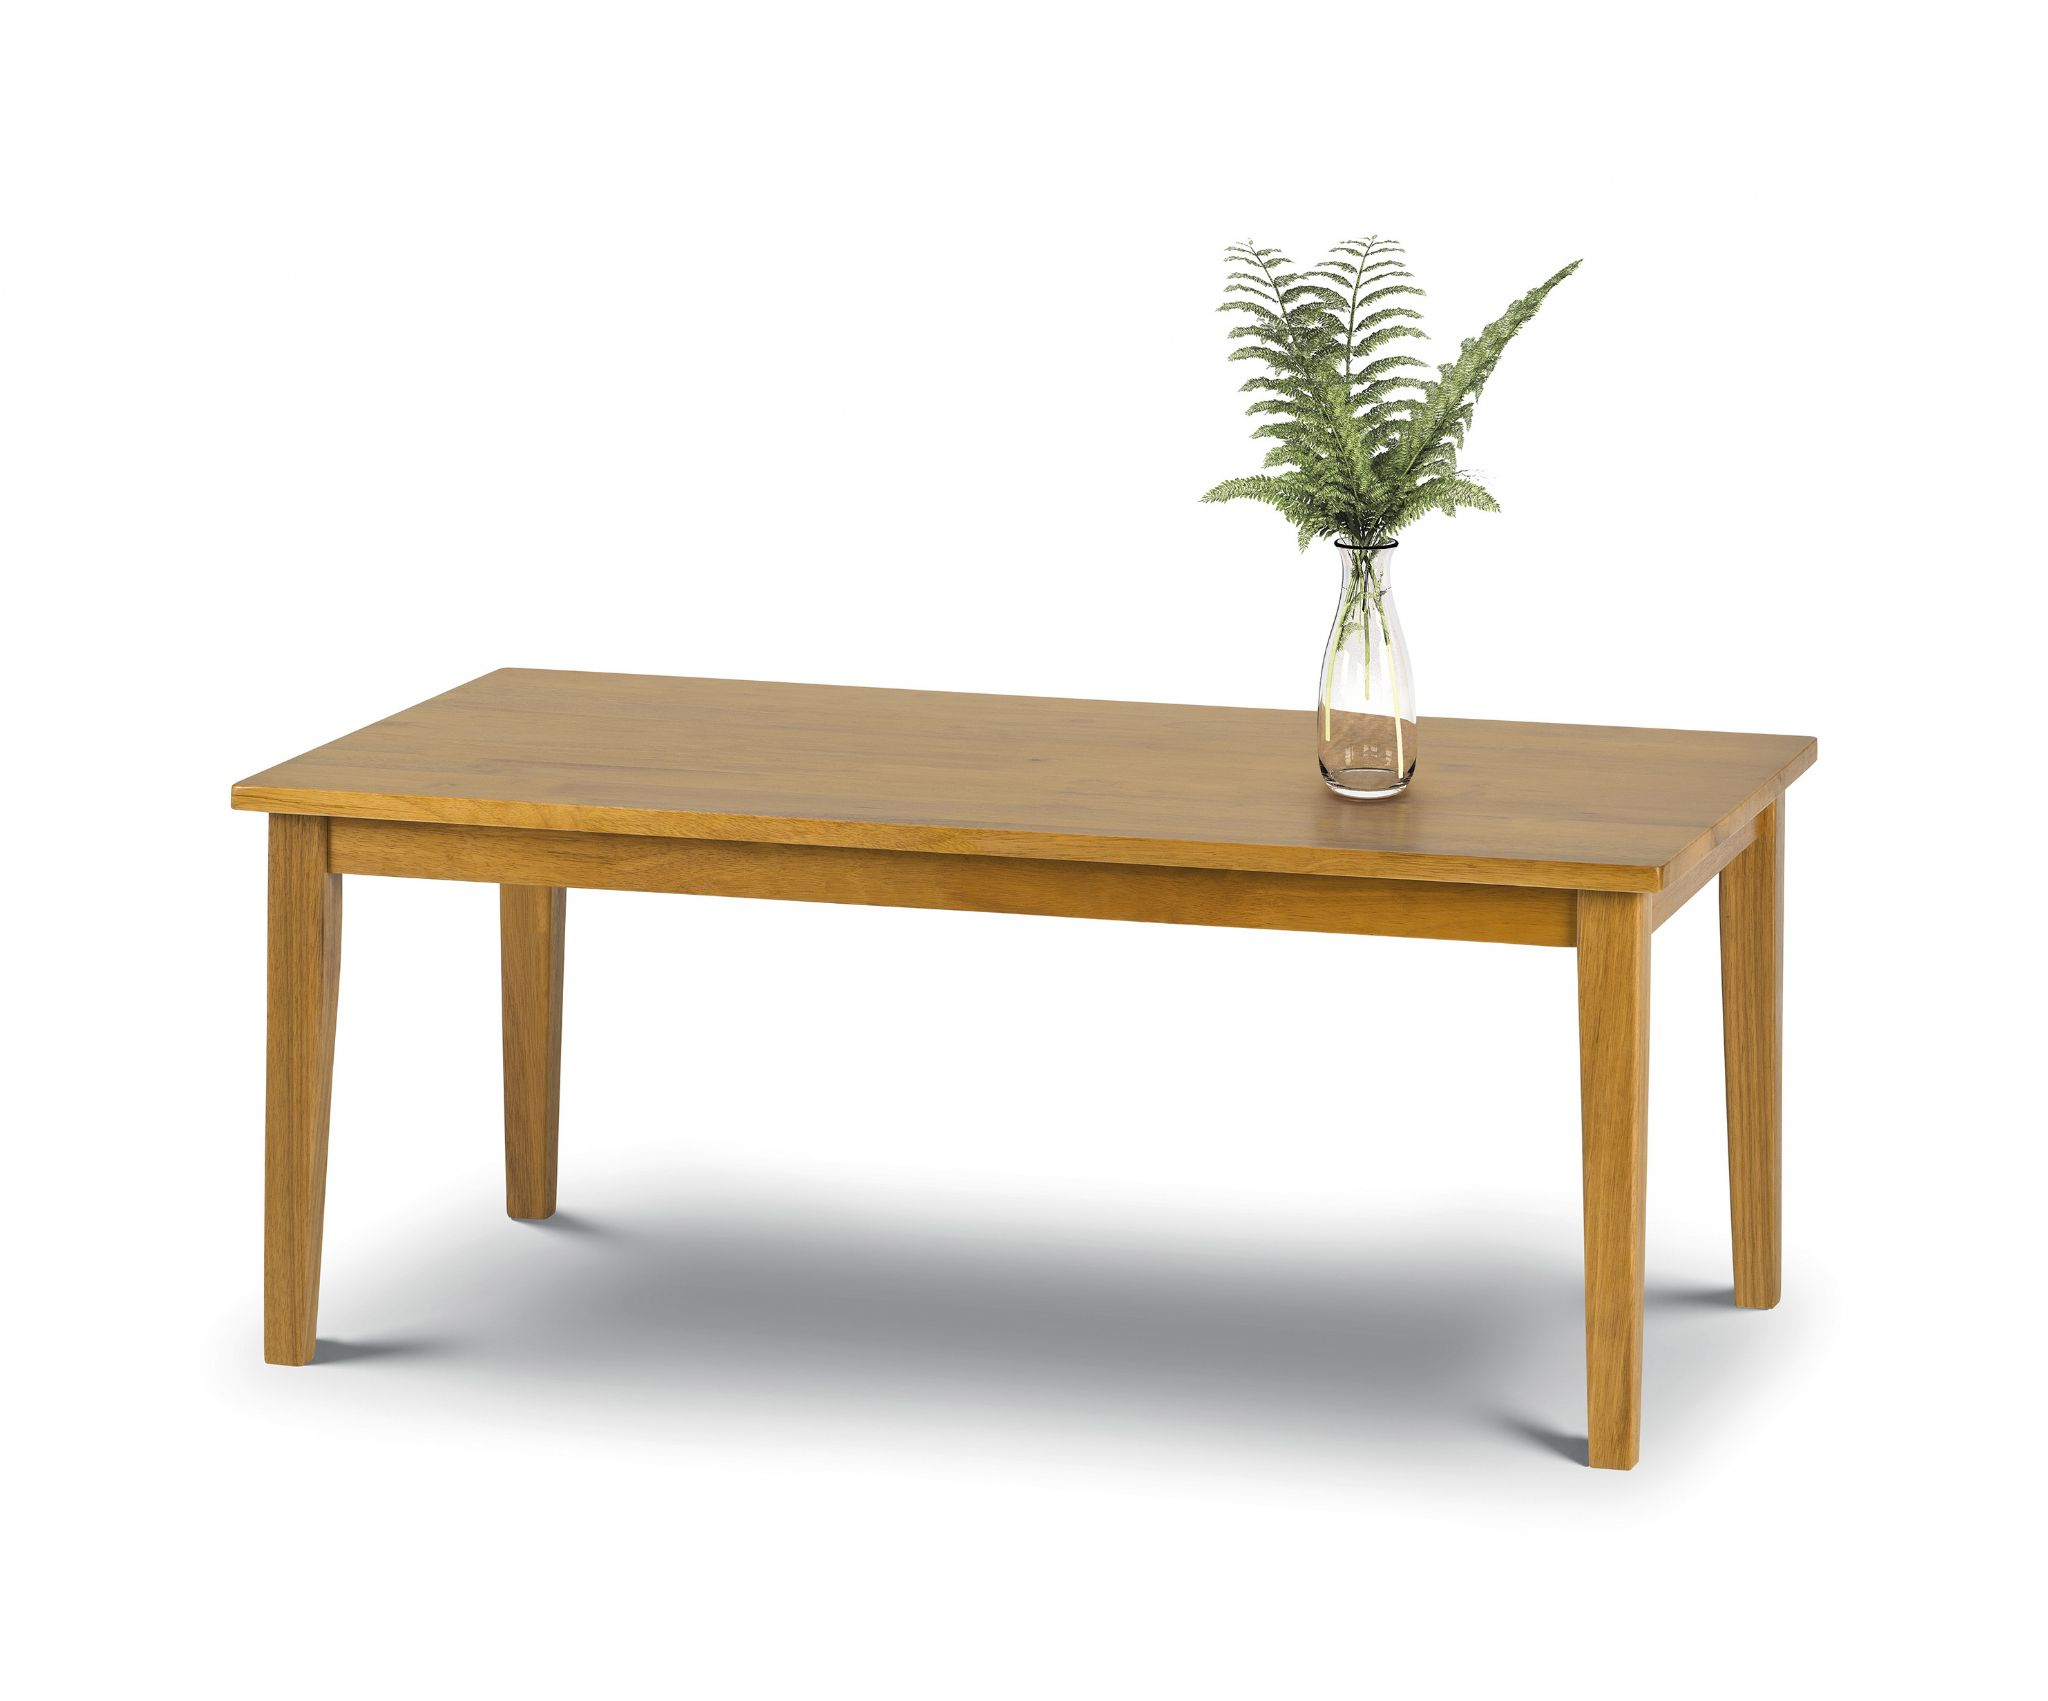 Toledo natural light oak finish coffee table jb151 for Sideboard toledo